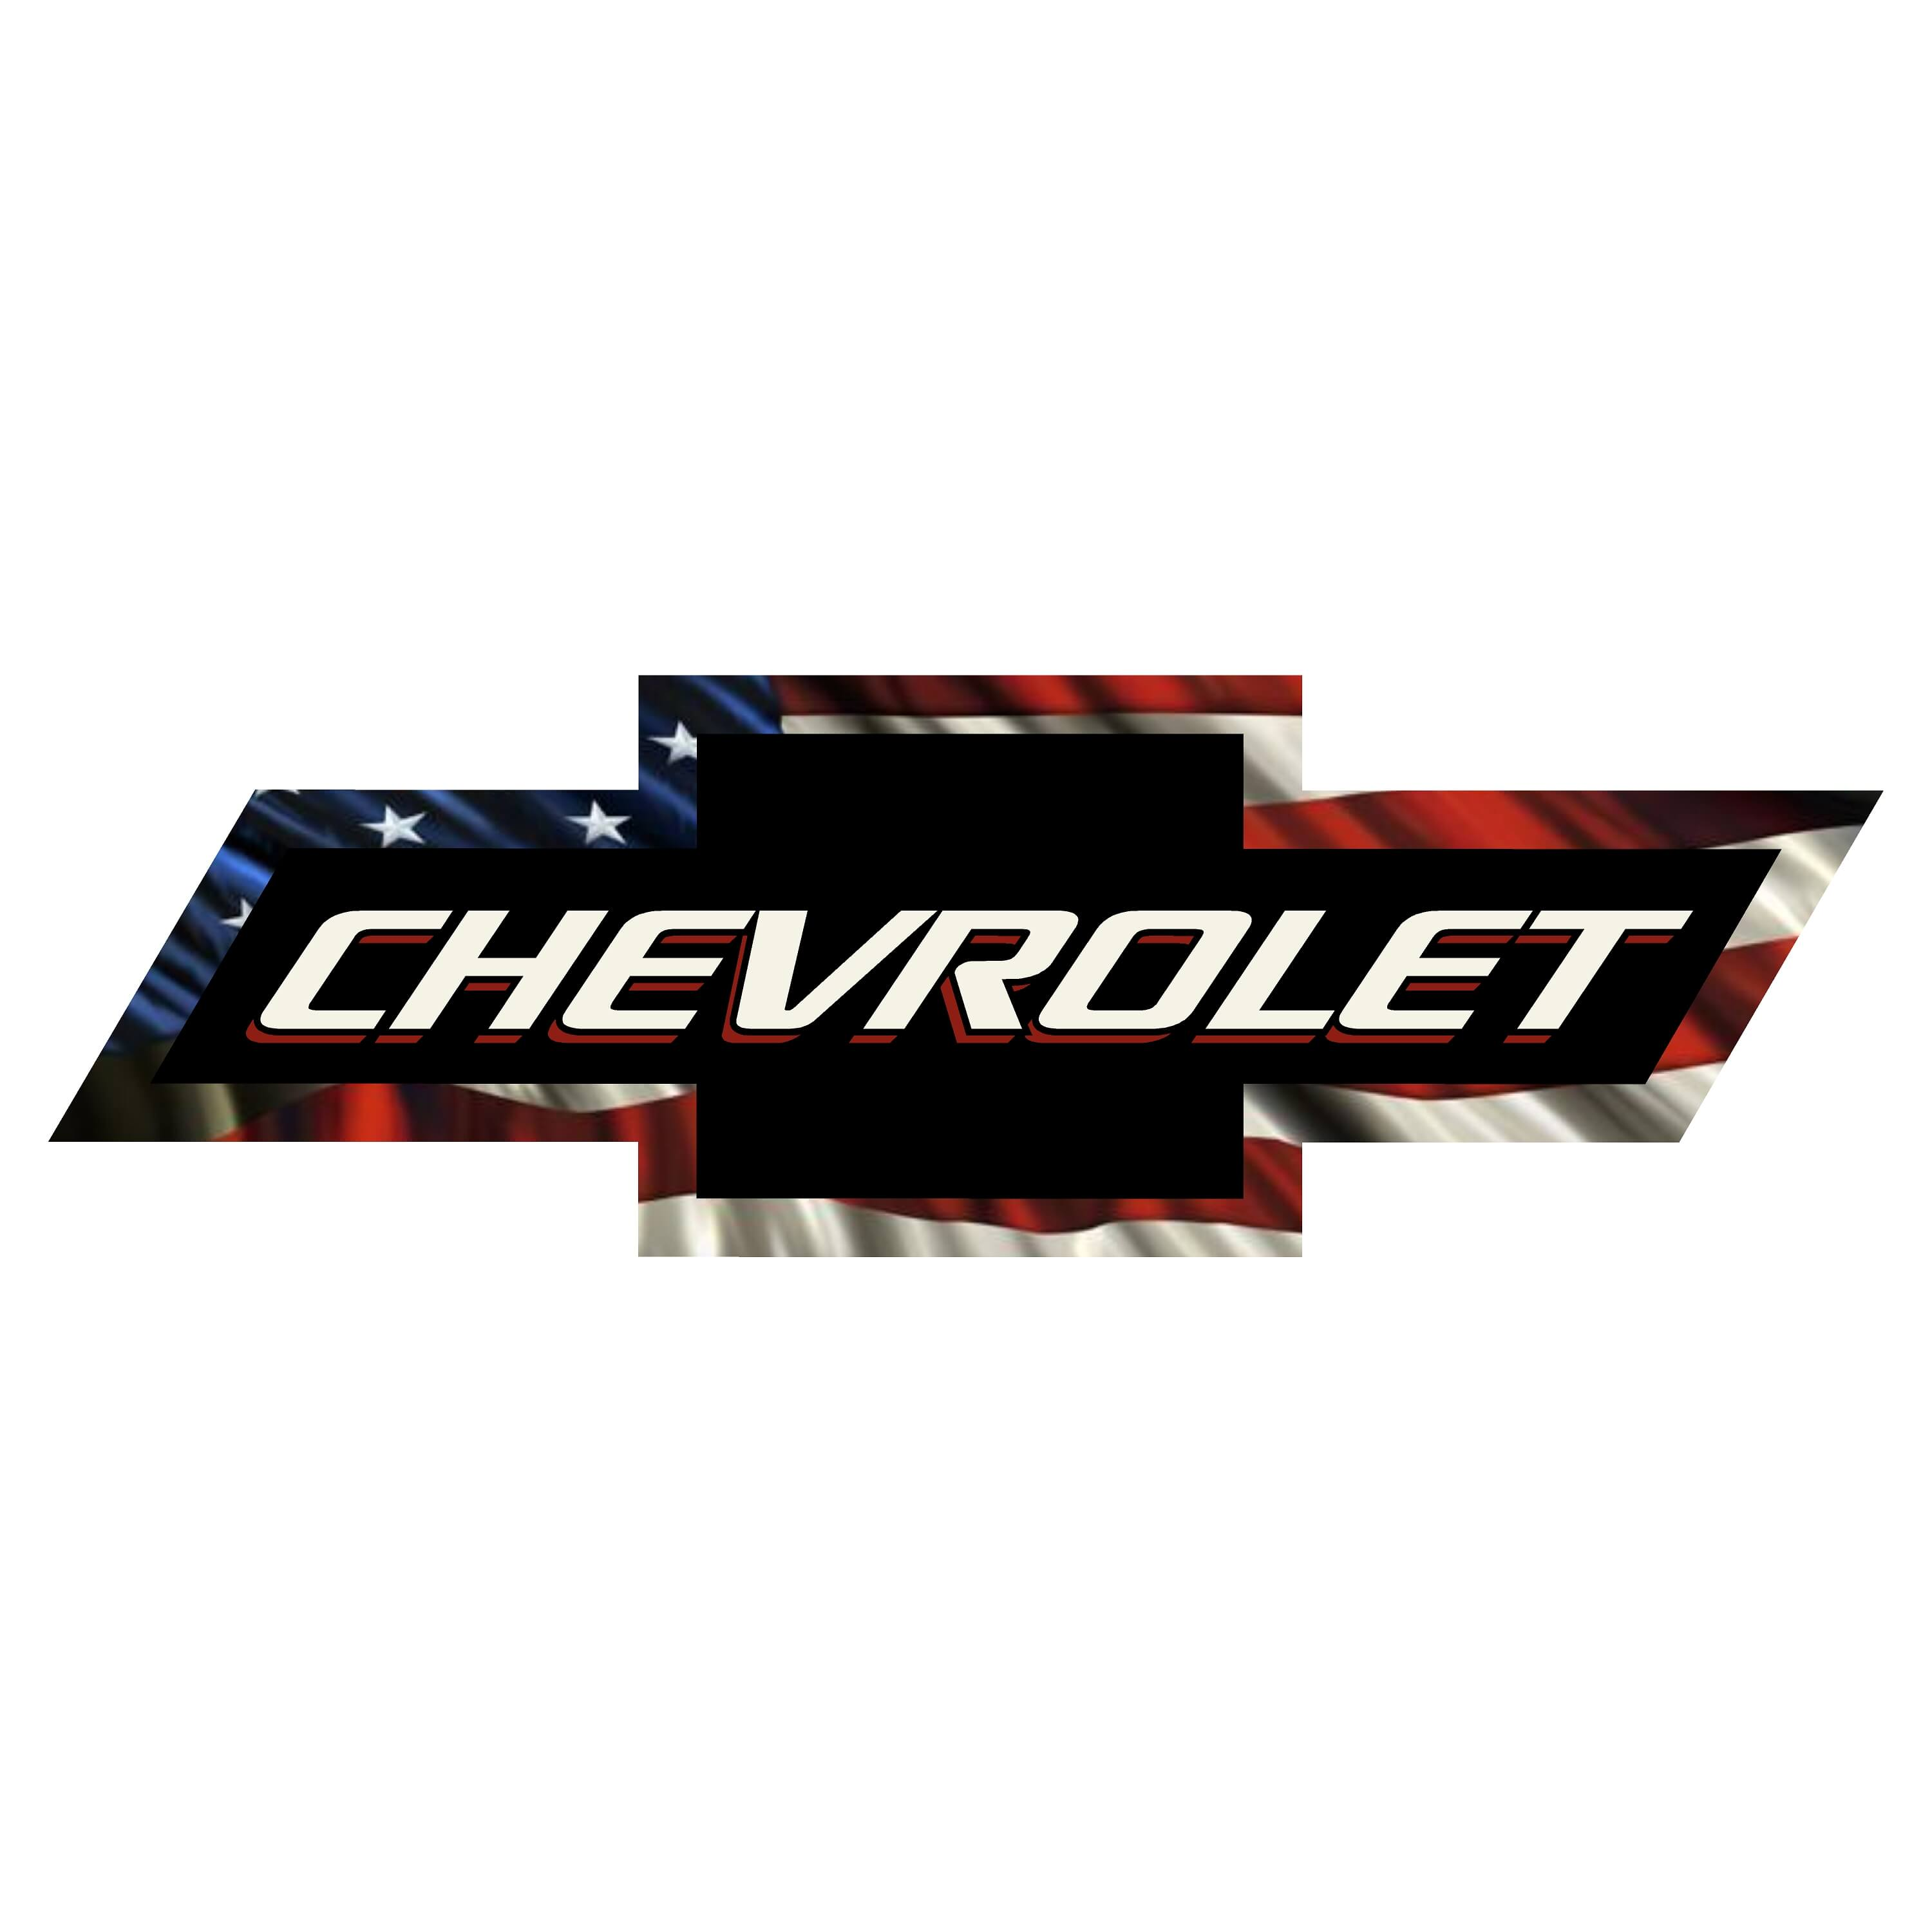 Chevy symbol stickers choice image symbol and sign ideas printed decal 0020 chevy bowtie american flag country boy printed decal 0020 chevy bowtie buycottarizona biocorpaavc